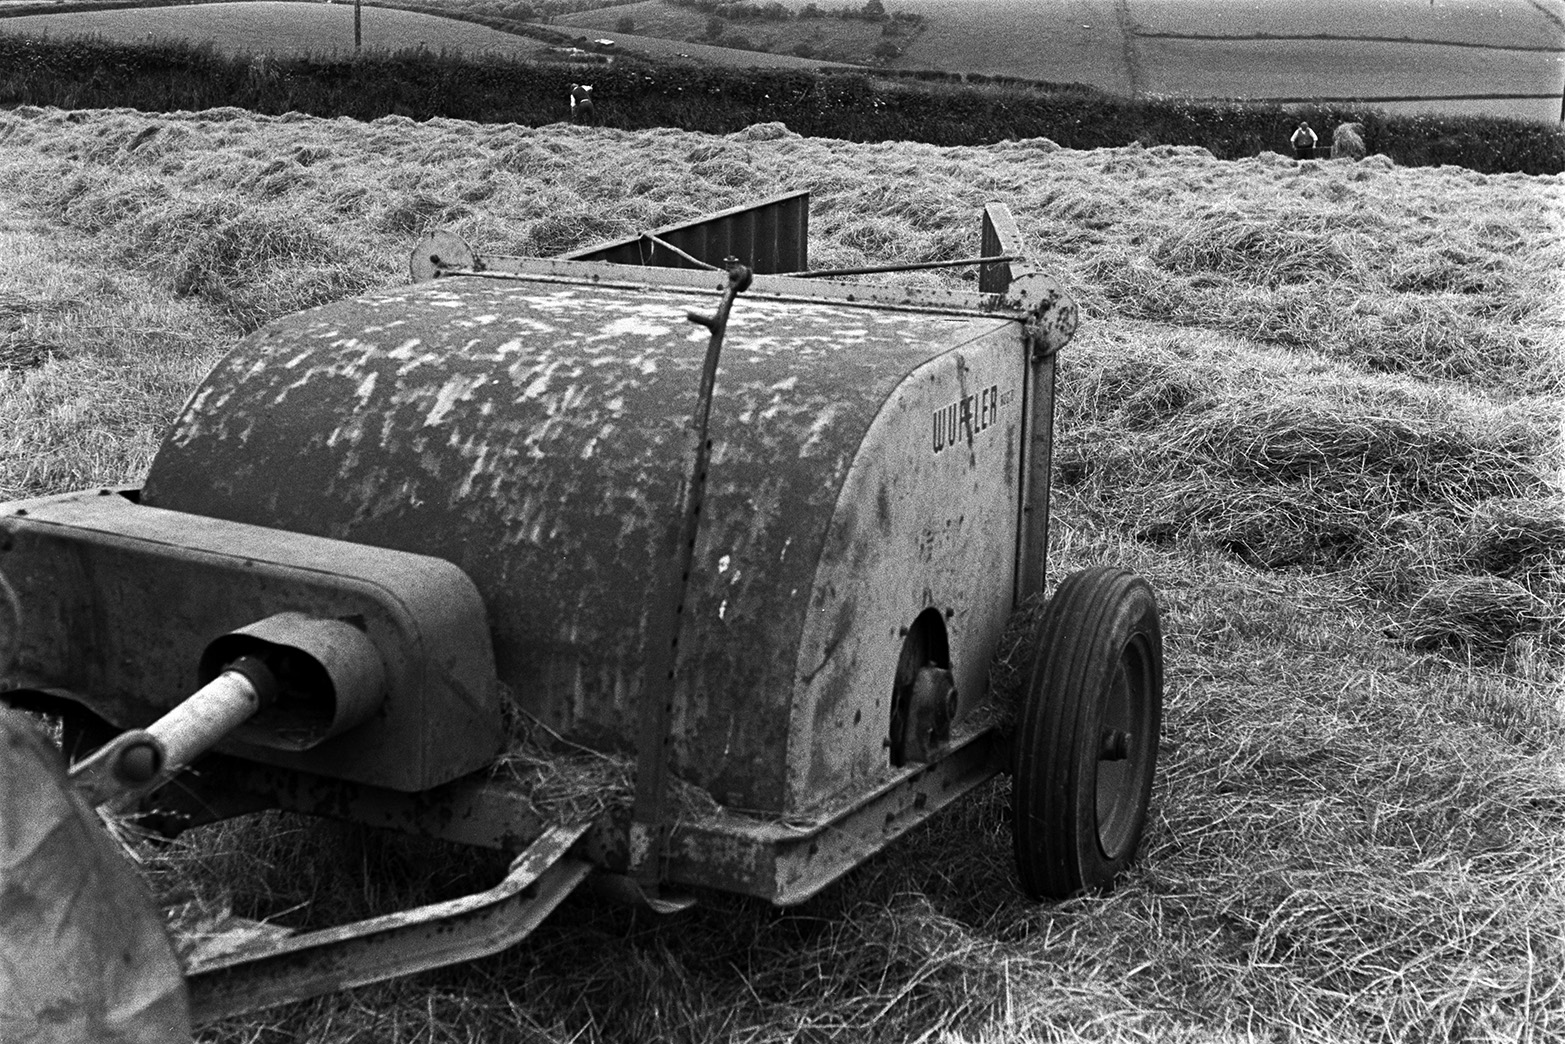 A windrow machine in a field at Mill Road Farm, Beaford. The windrows ready for baling are visible and men can be seen turning the hay by hand in the background. The farm was also known as Jeffrys.